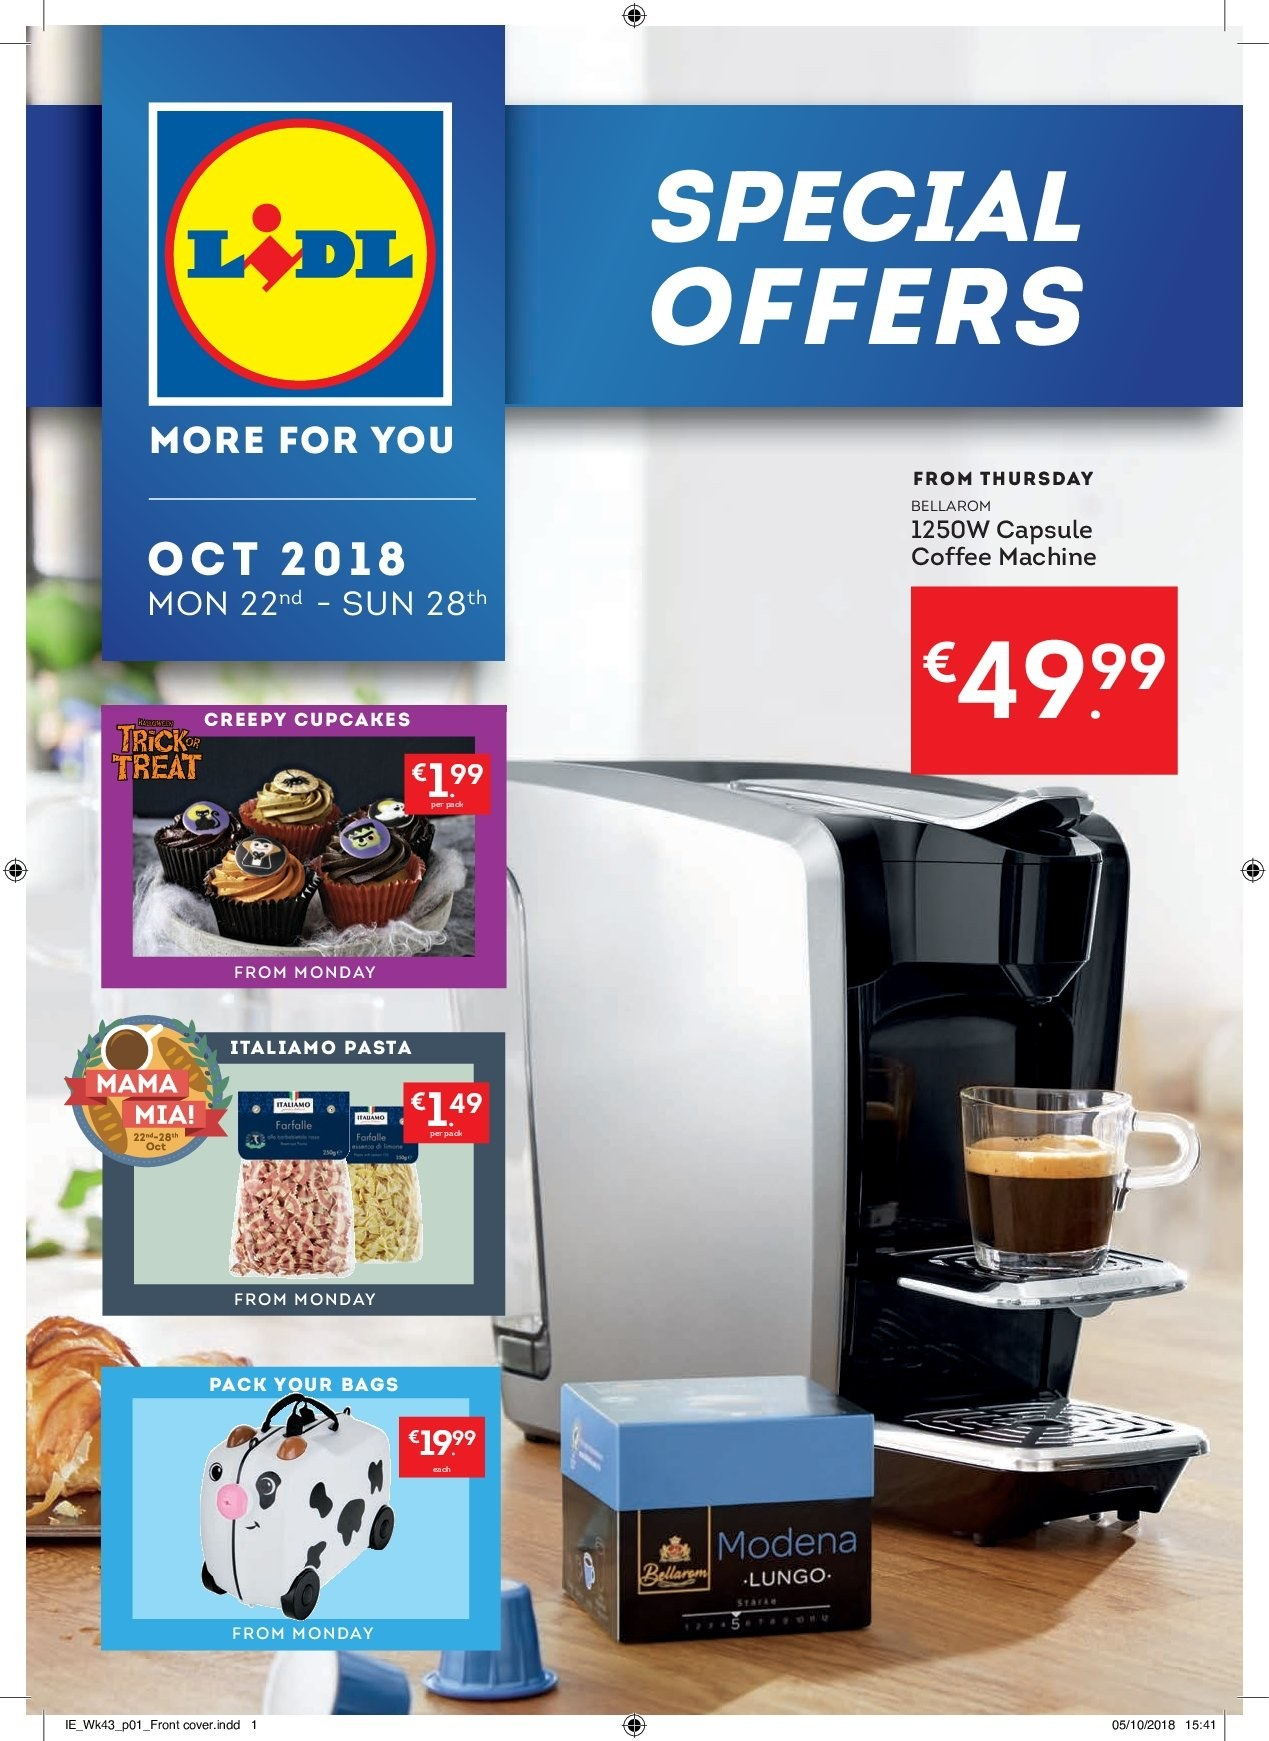 Lidl offer  - 22.10.2018 - 28.10.2018 - Sales products - cupcake, pasta, bag. Page 1.